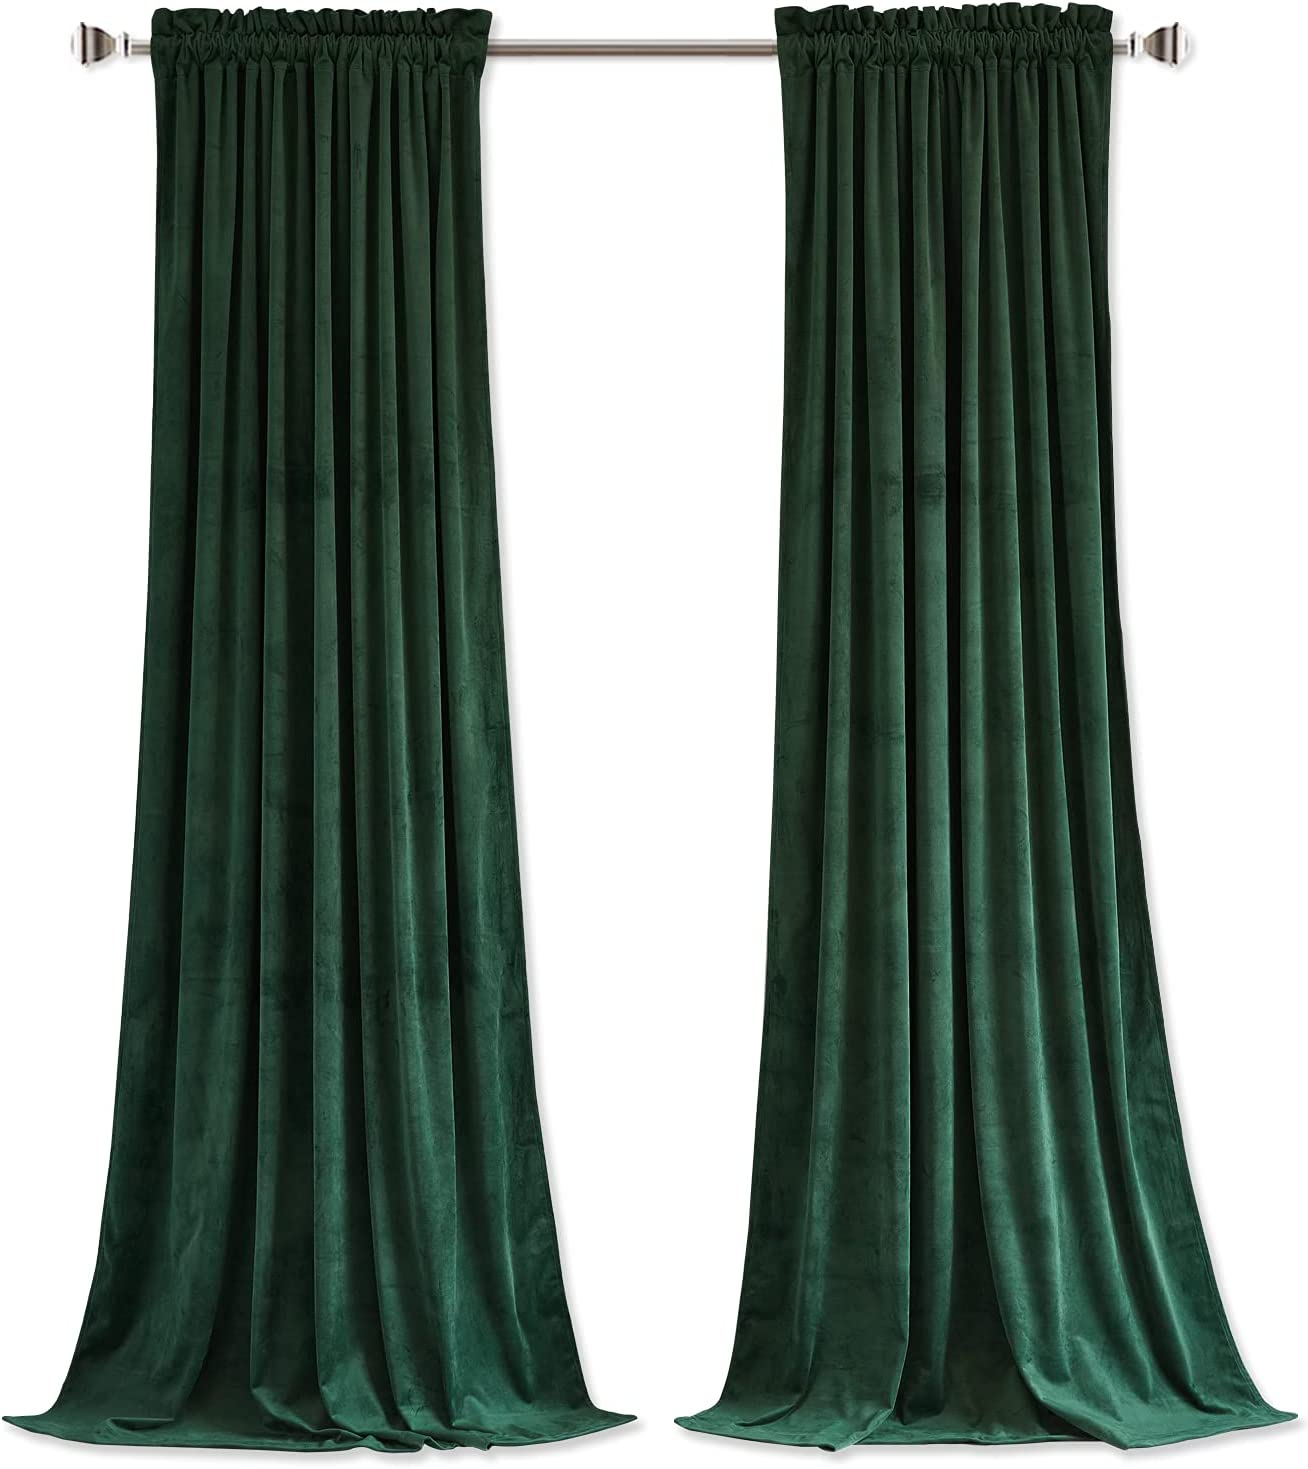 StangH Dark Green Velvet Curtains Window - Luxury A surprise price is realized Rare Panel Blackout